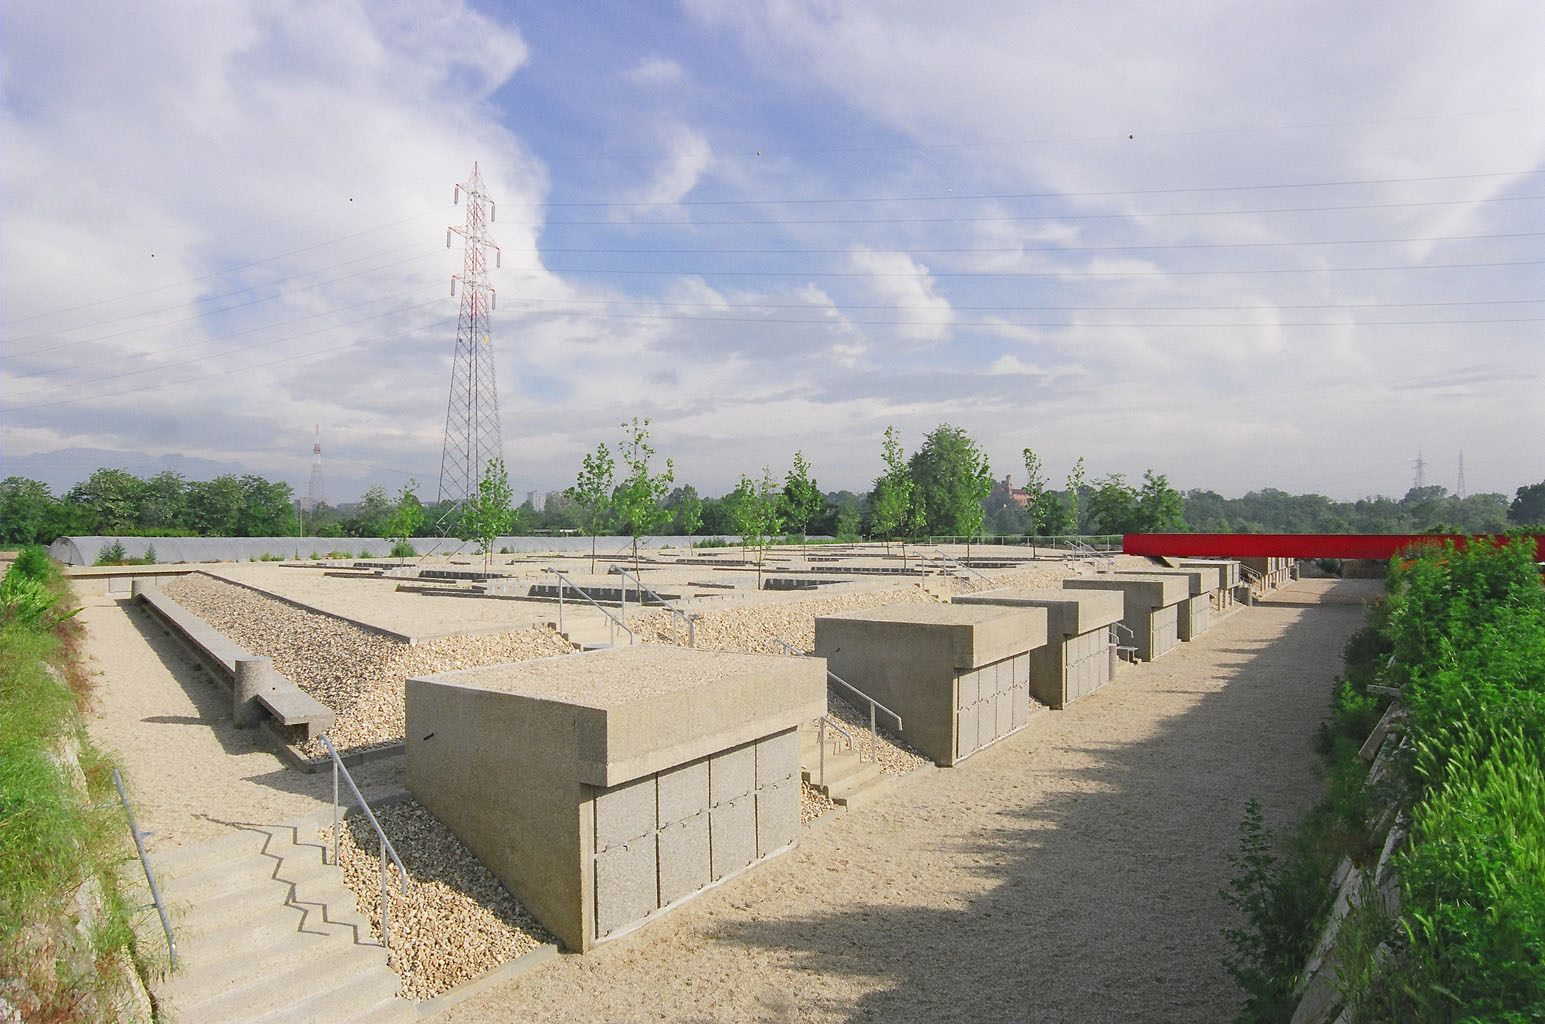 64 borgaretto tombs overview.jpg